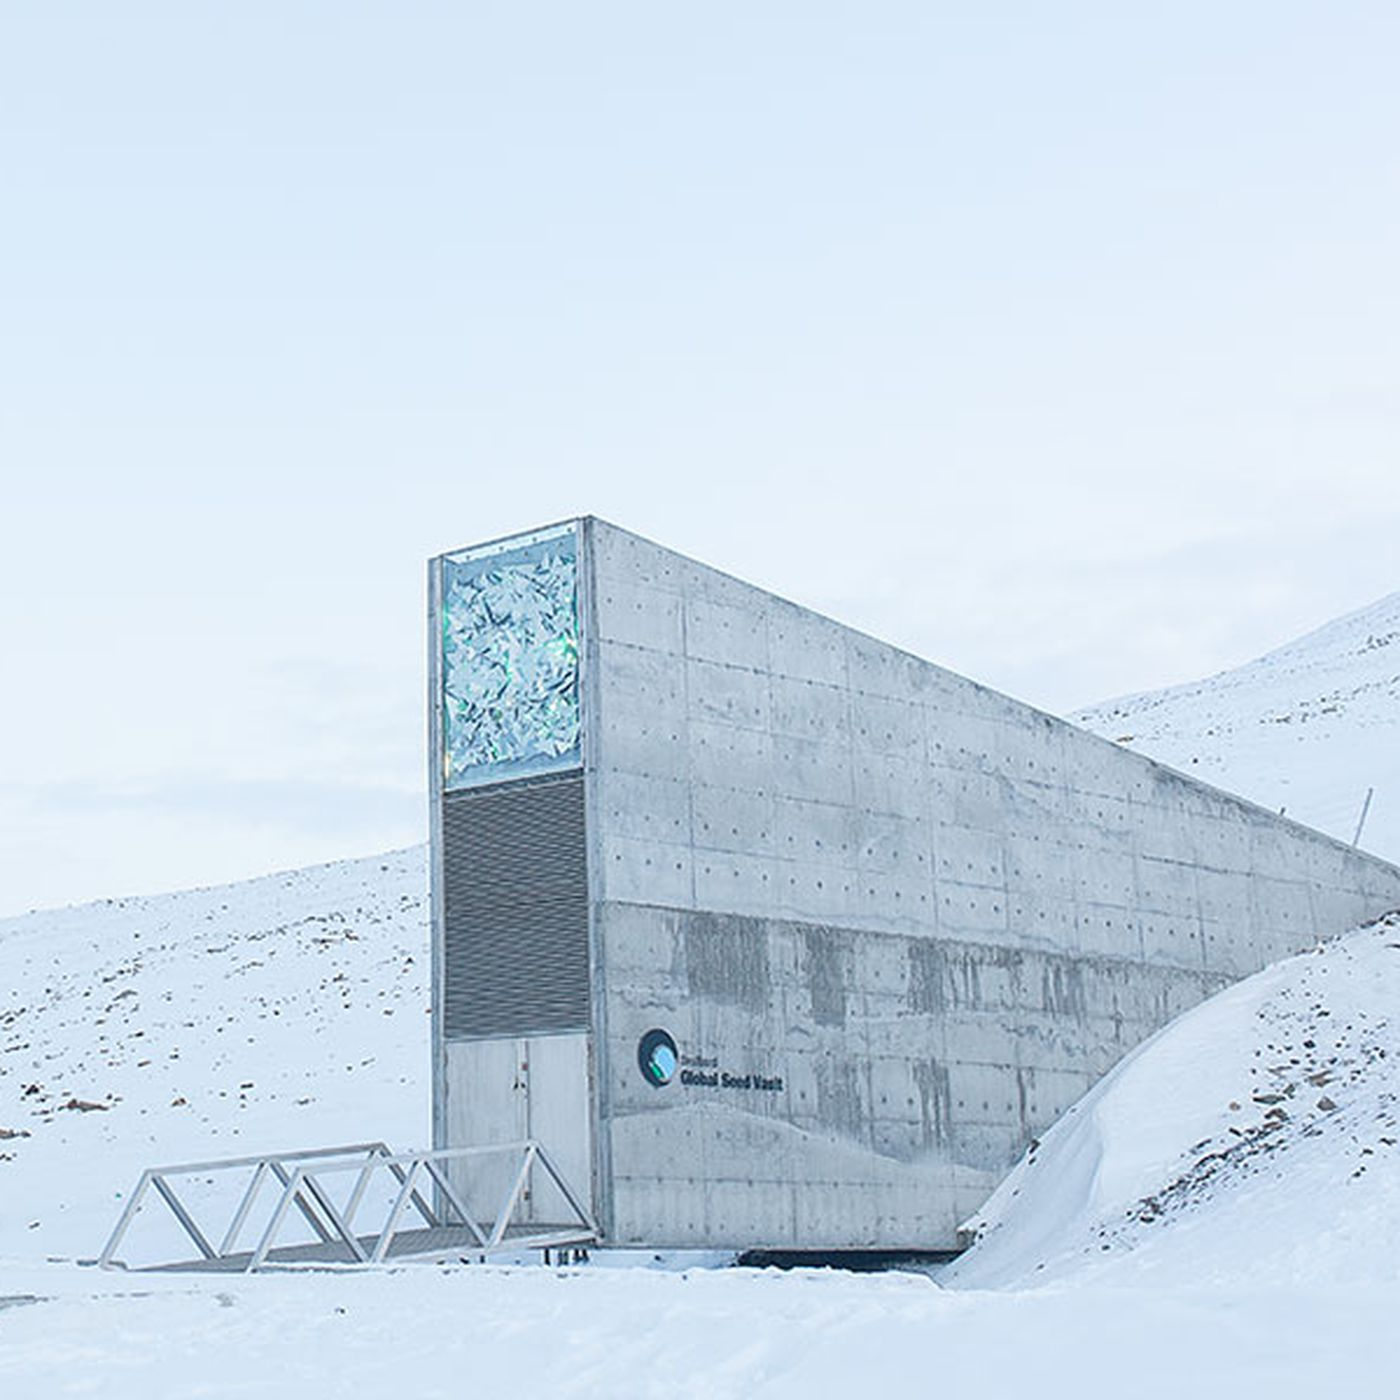 First Seed Withdrawal From Doomsday Vault Prompted By Syrian